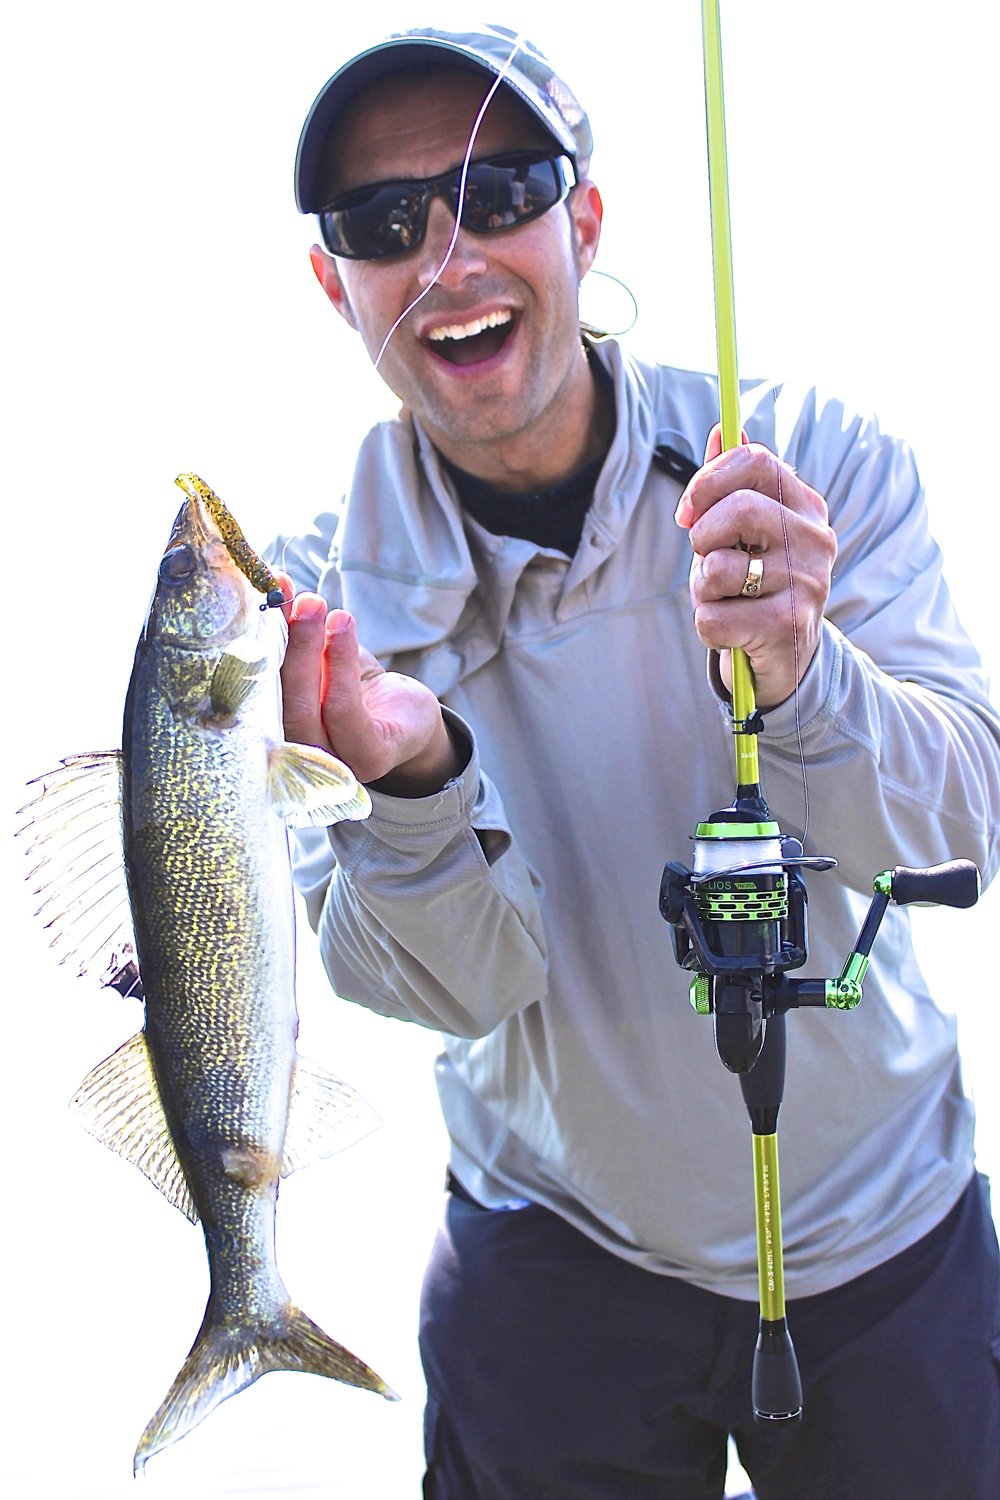 Great for casting jigs for walleyes